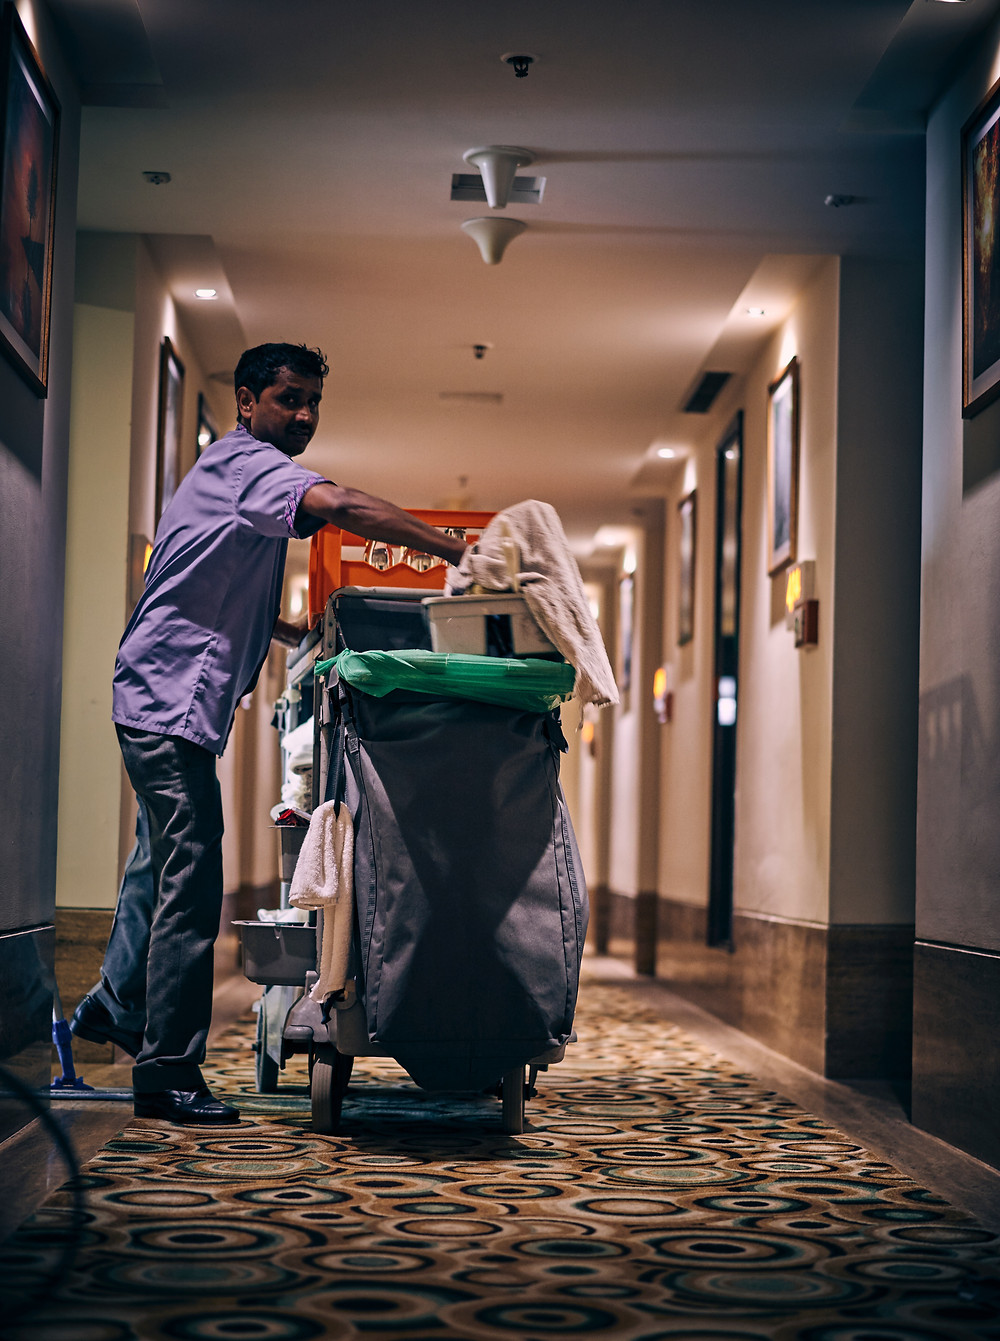 a service cleaner with a garbage bin